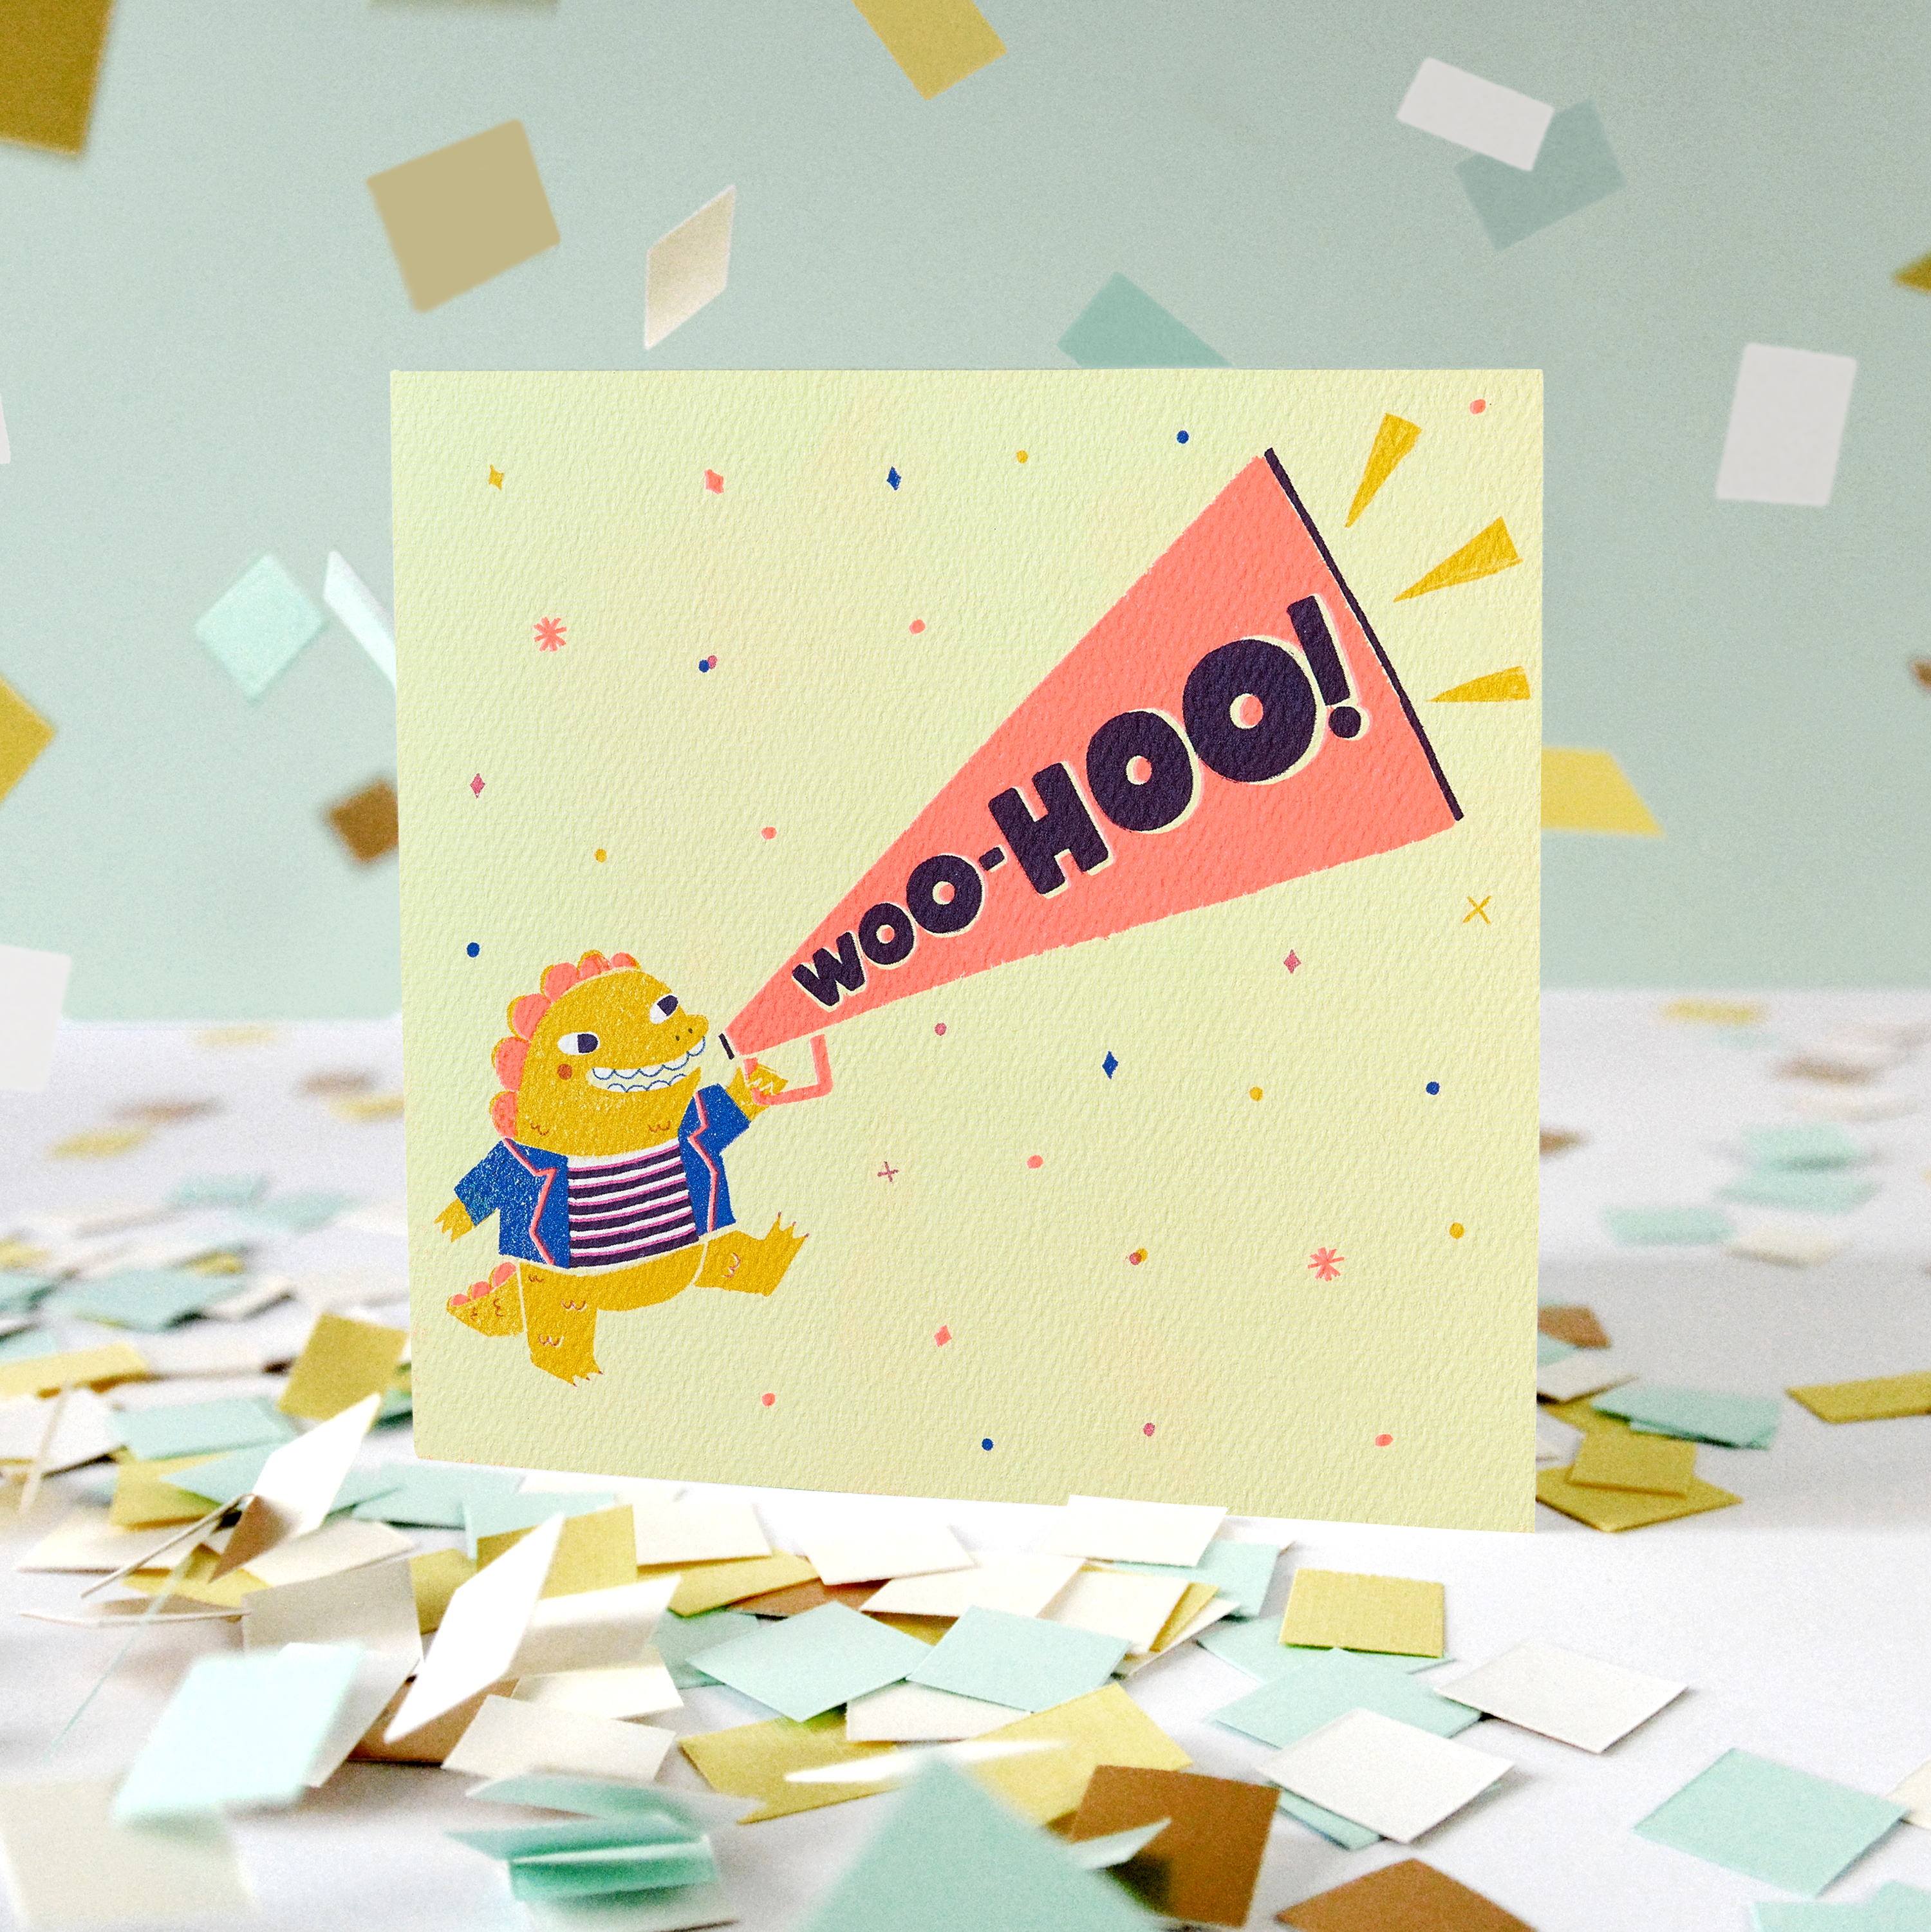 Woo-Hoo Greeting Card for Kids - Birthday, Congratulations, Thinking of You, Friendship, Encouragement image